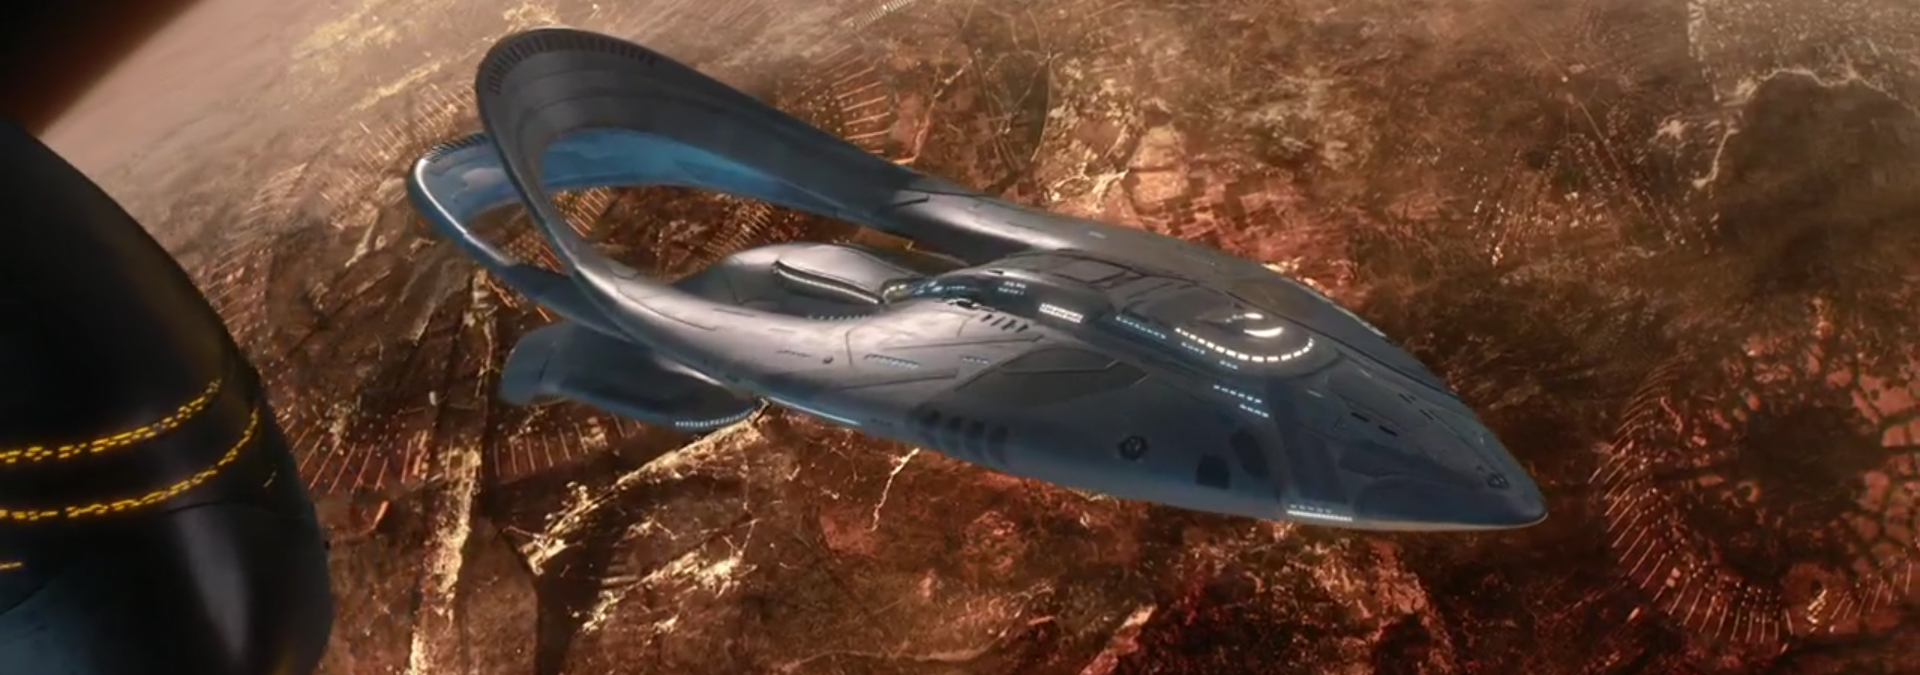 The Orville: Deflectors. Image Credit: Fox.